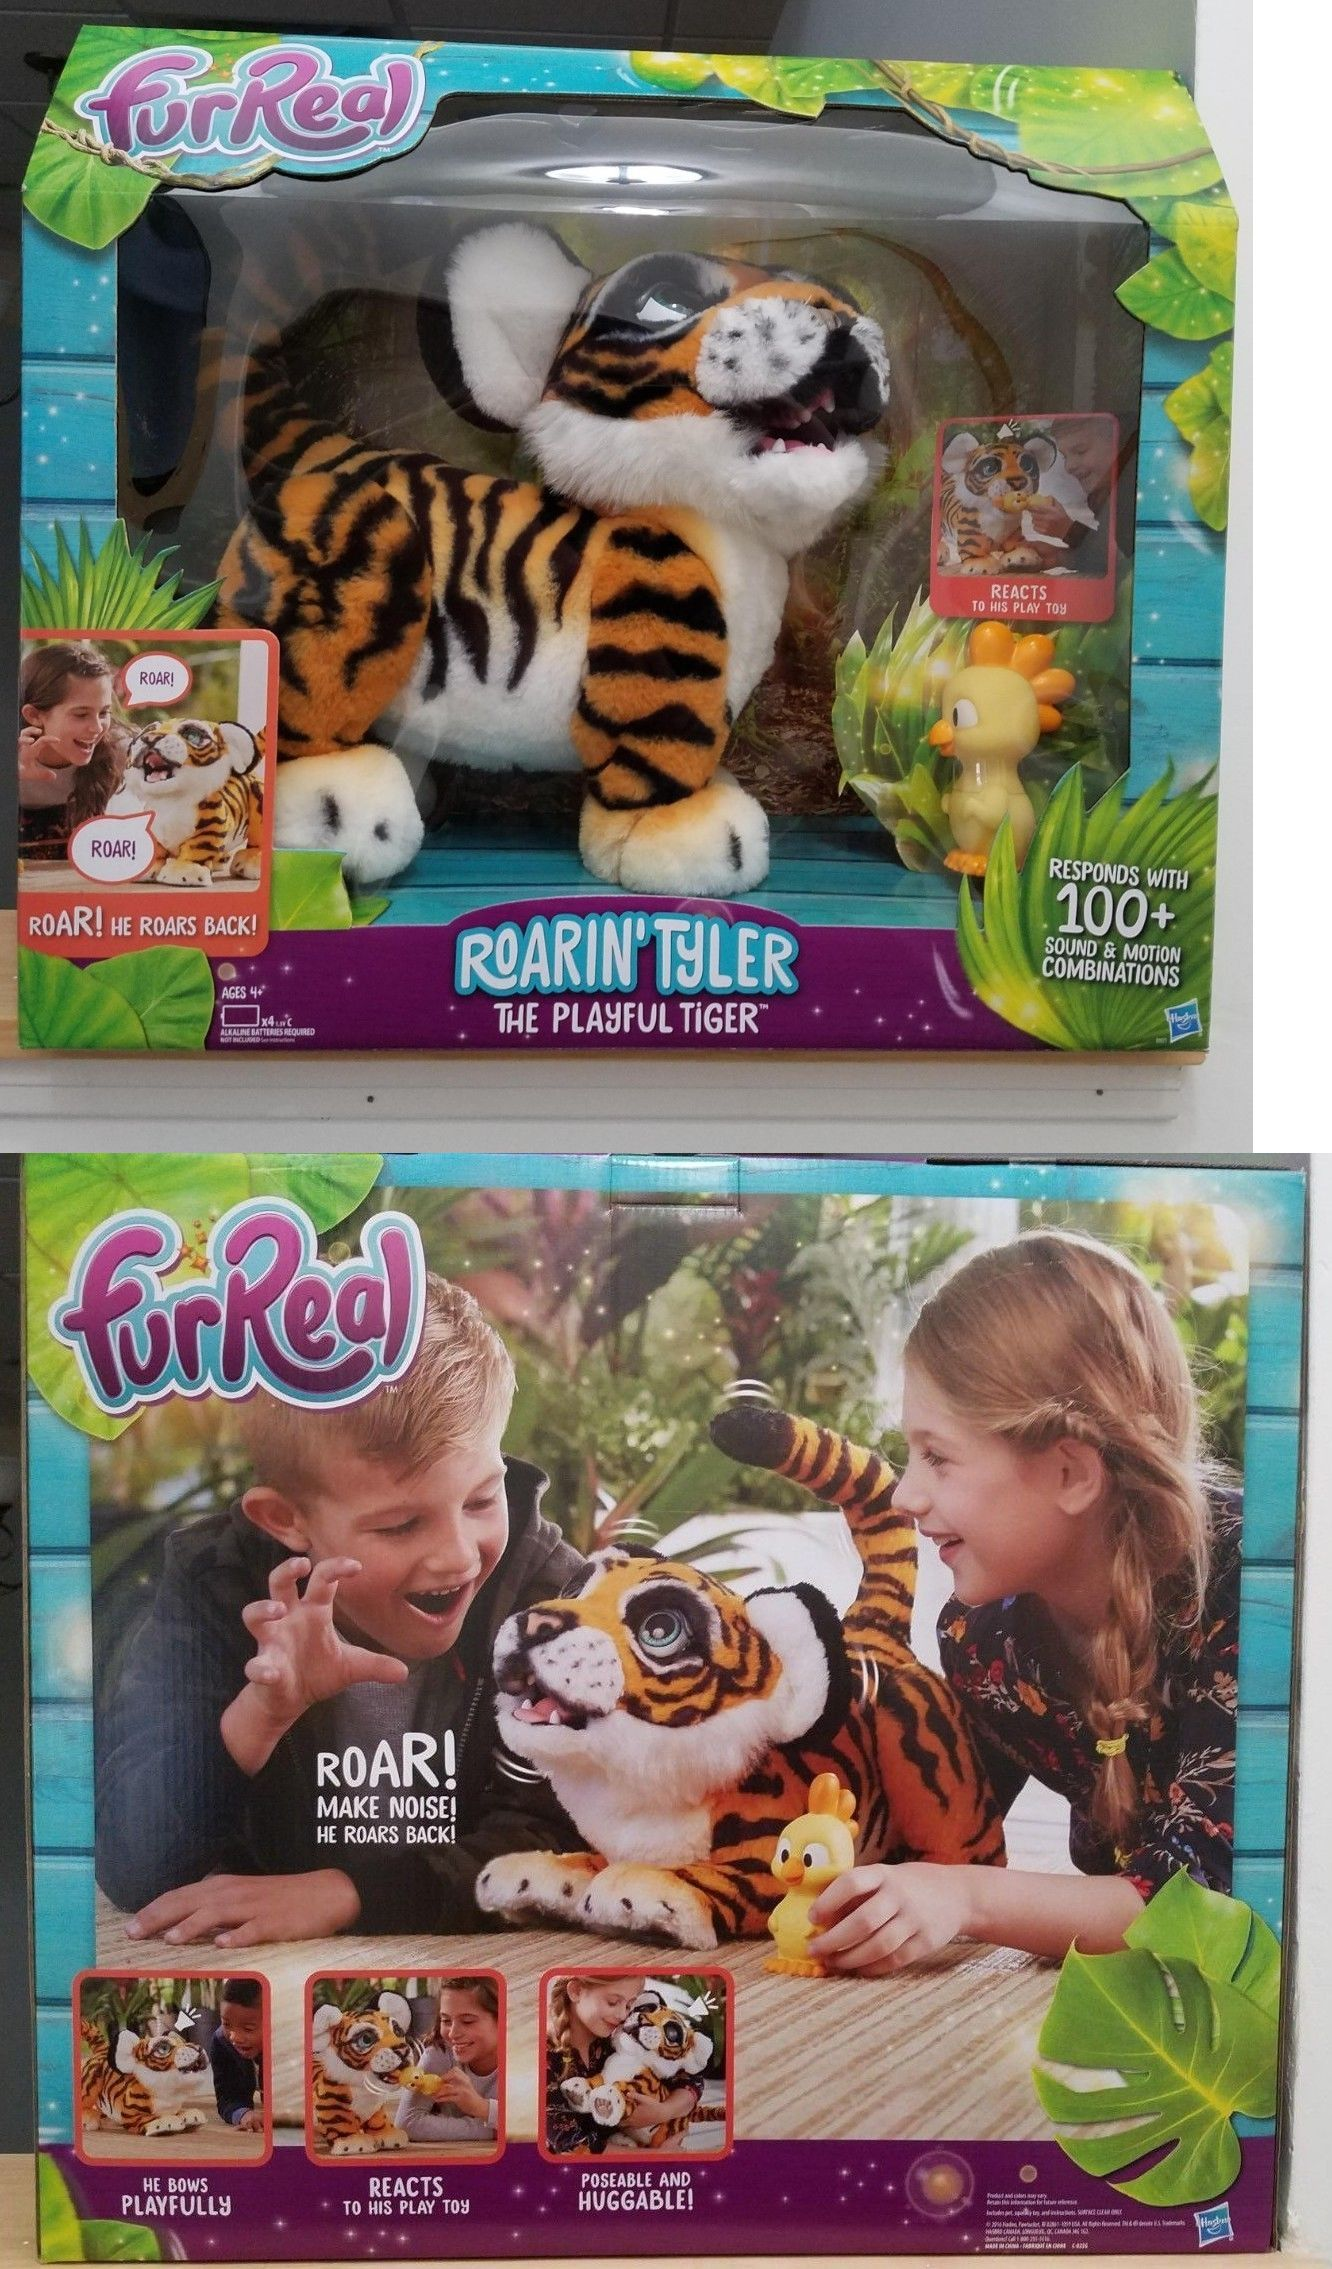 Furreal Roarin Tyler The Playful Tiger New In Sealed Box Fast Free Shipping Fur Real Friends Play Toys Interactive